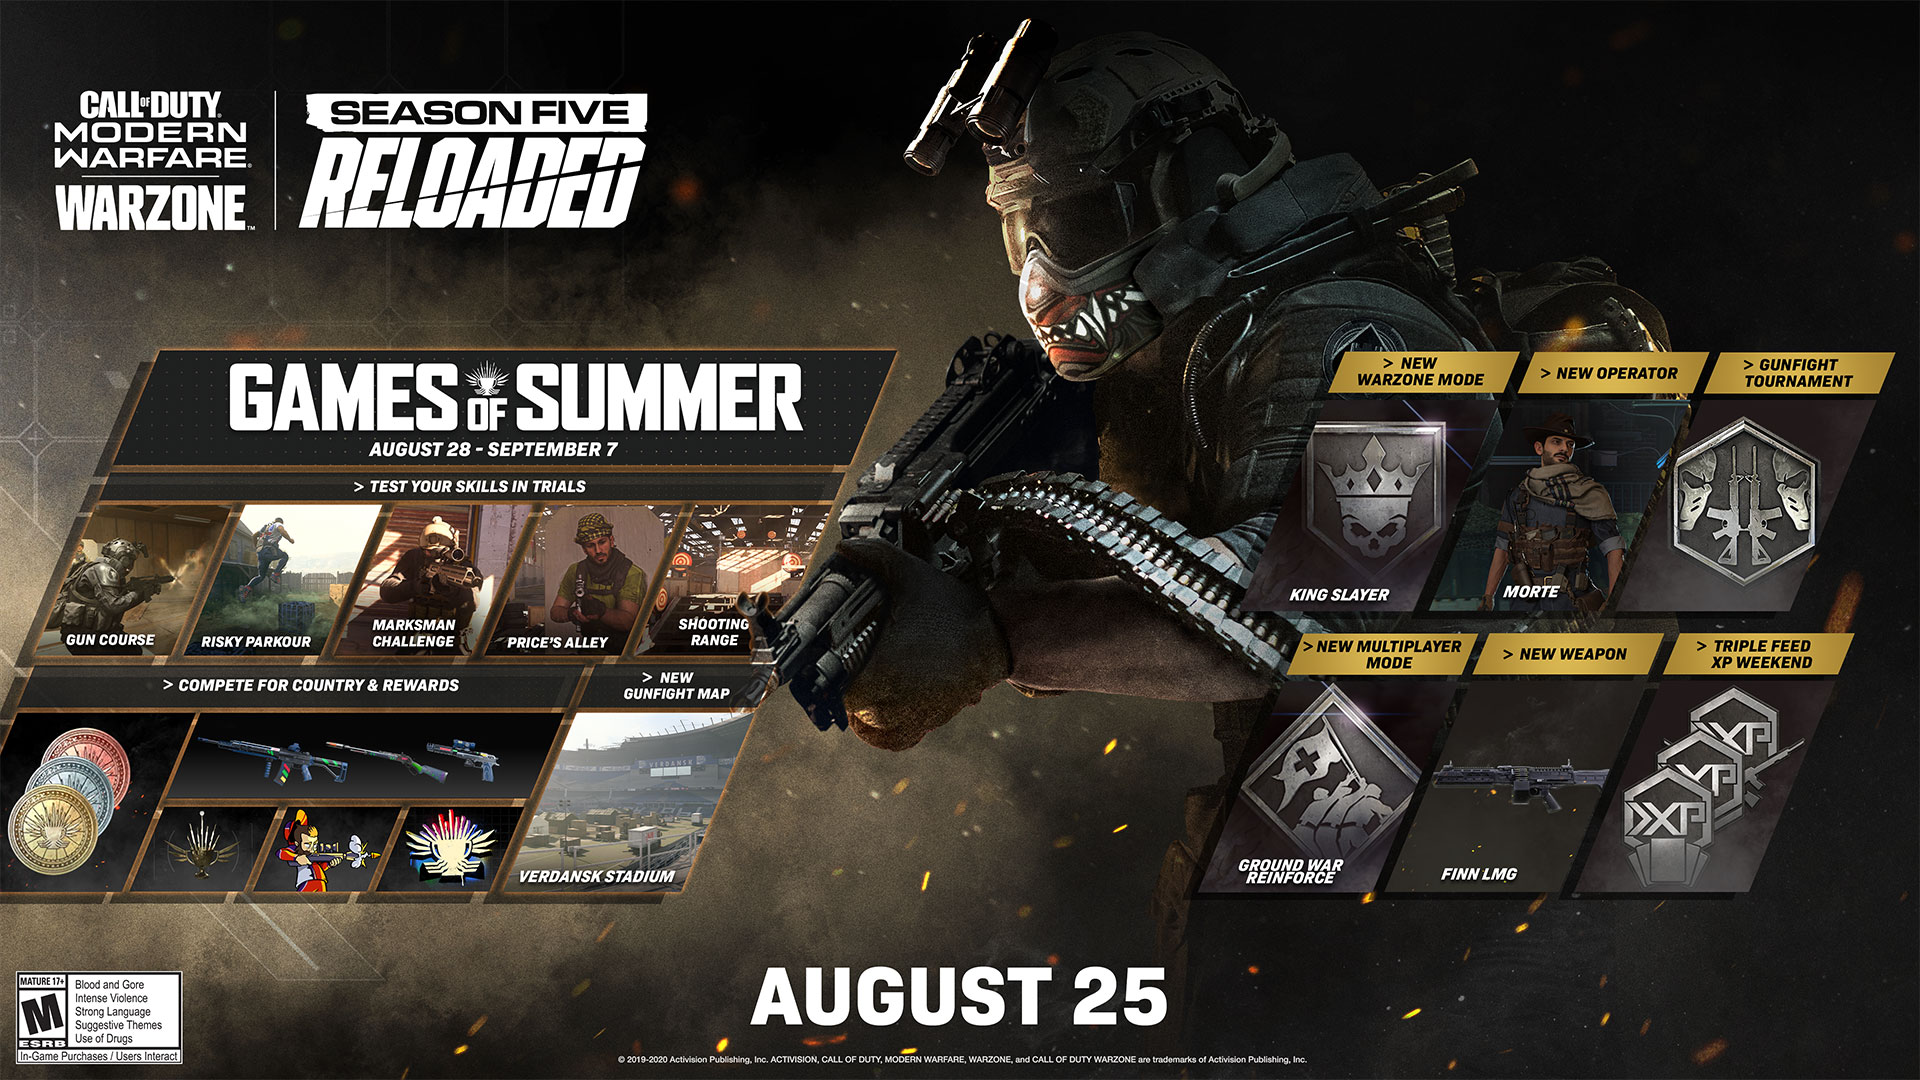 Warzone Season 5 Reloaded Live Release Date 1 27 Patch Notes Games Of Summer Road Map Weapons Maps Battle Pass Rewards Operators And Everything You Need To Know